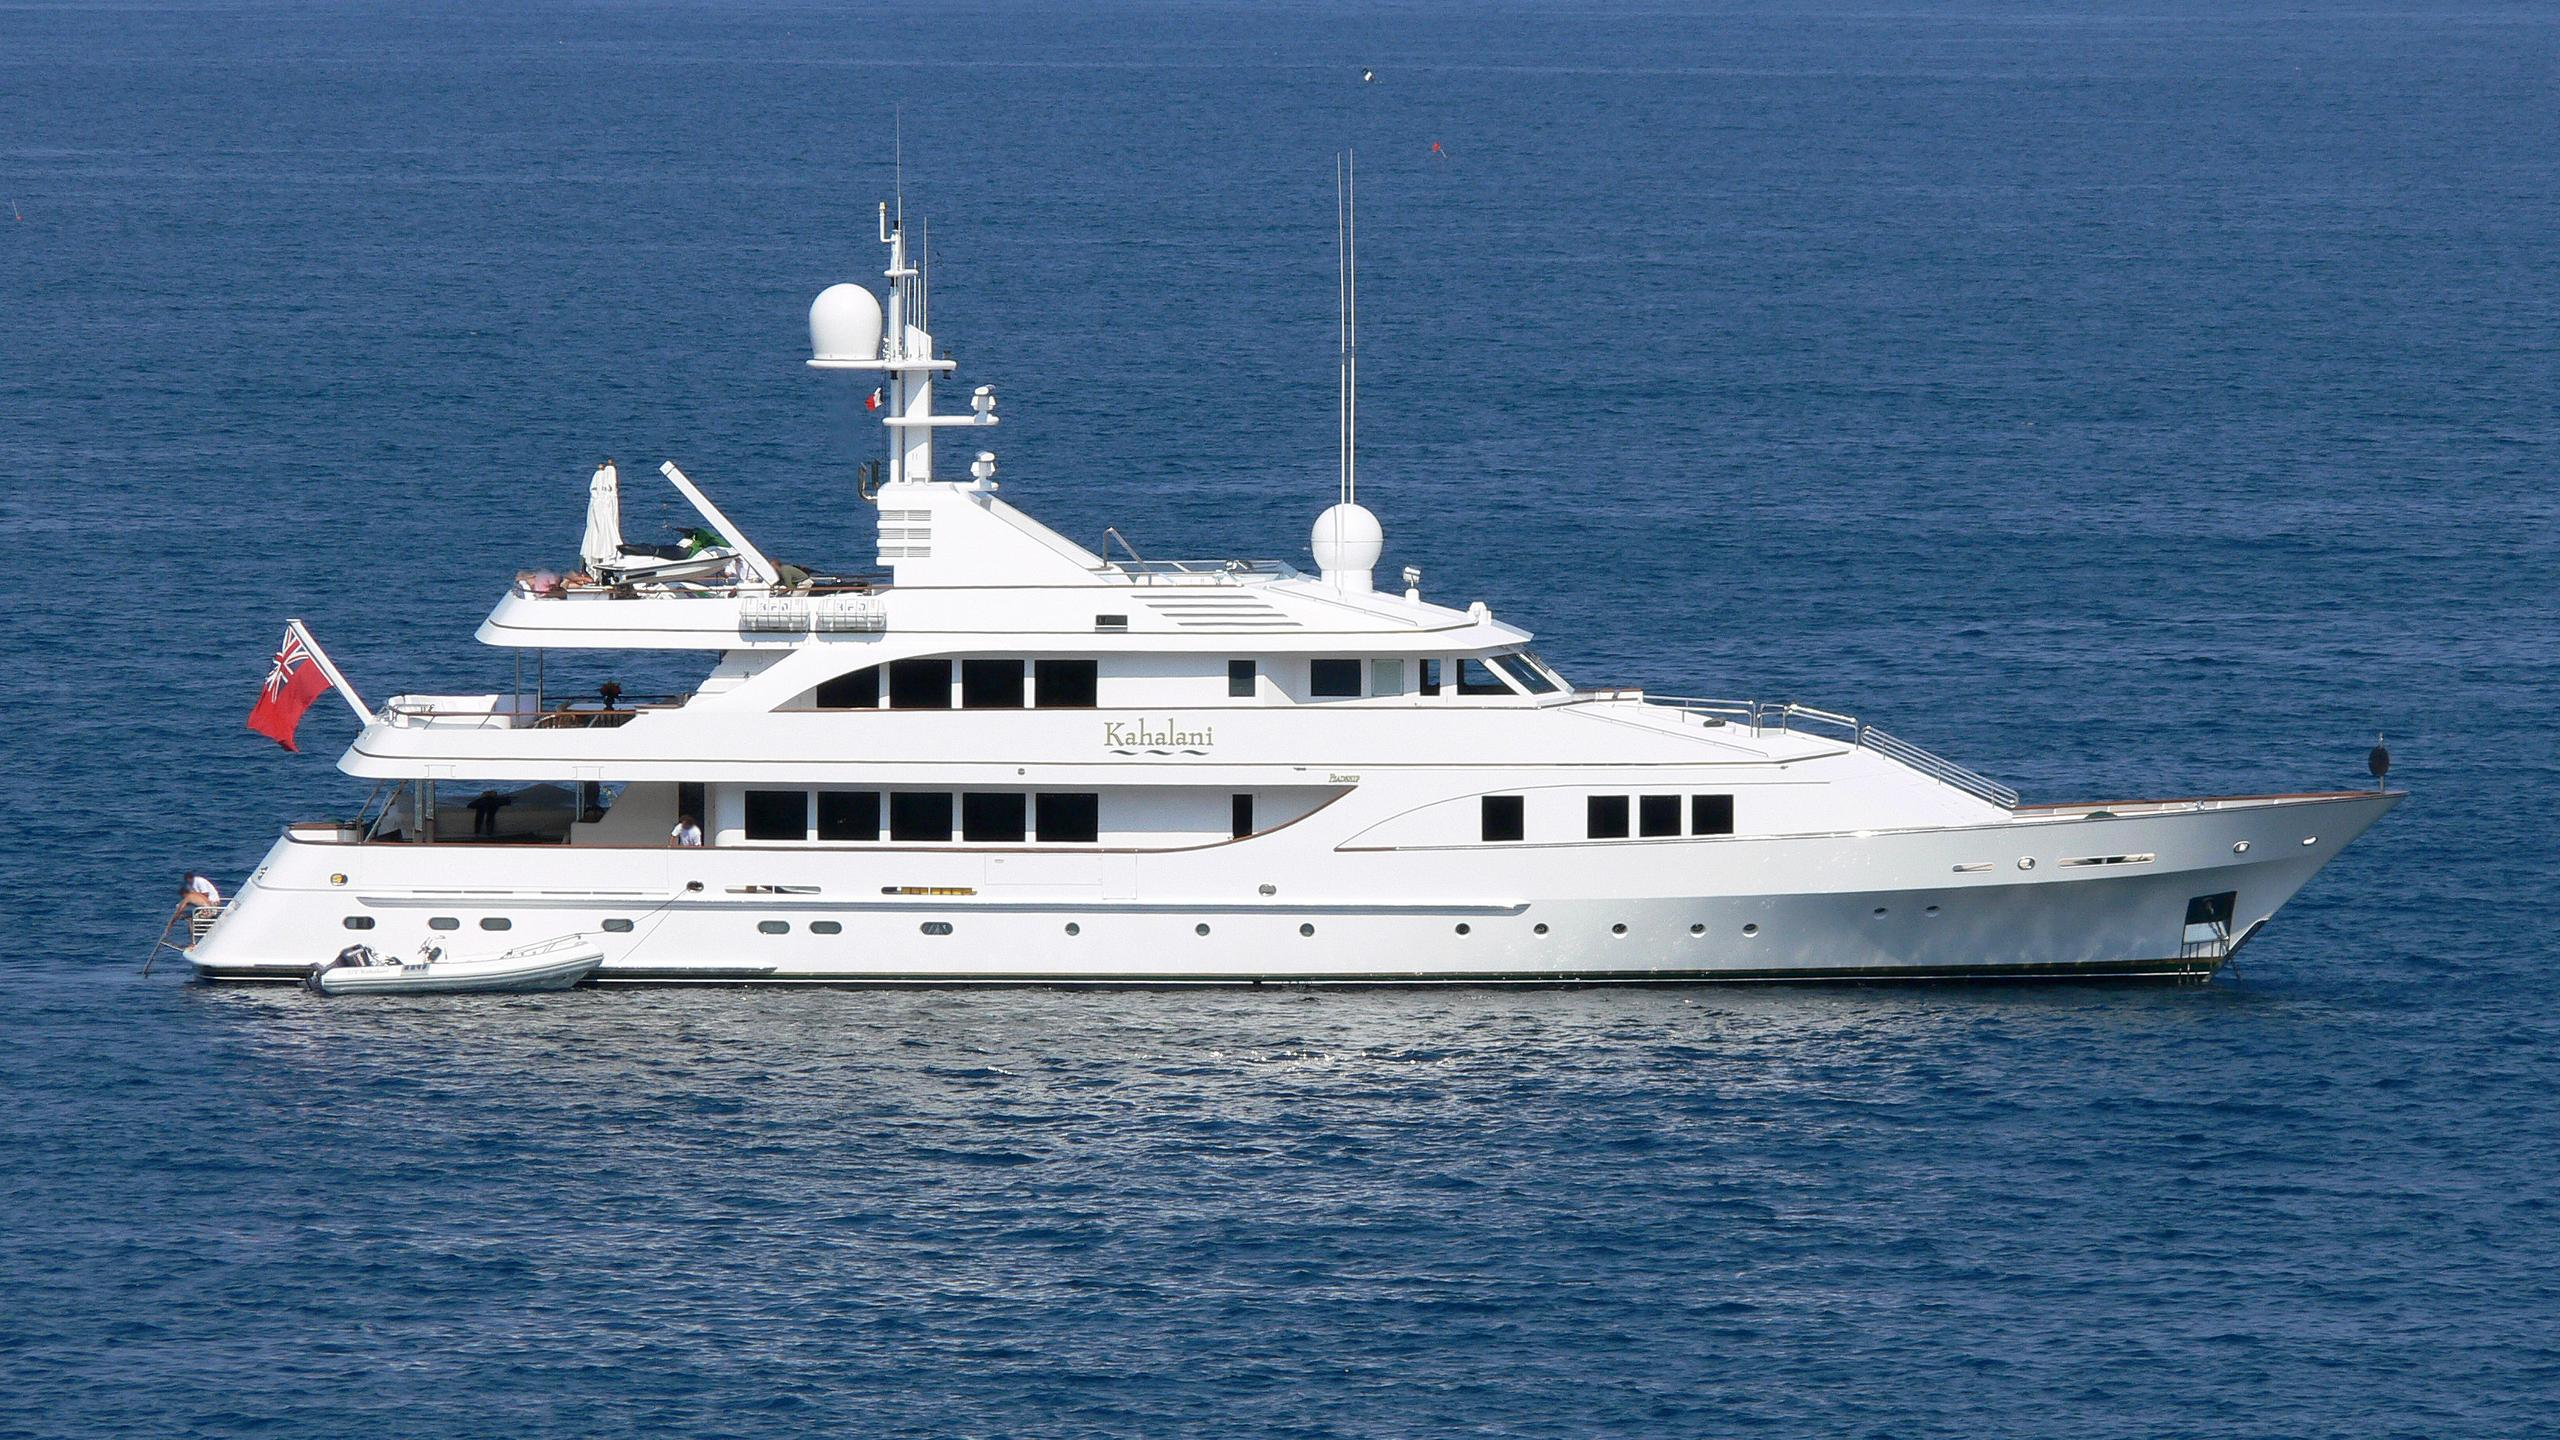 eclipse-motor-yacht-feadship-1993-43m-profile